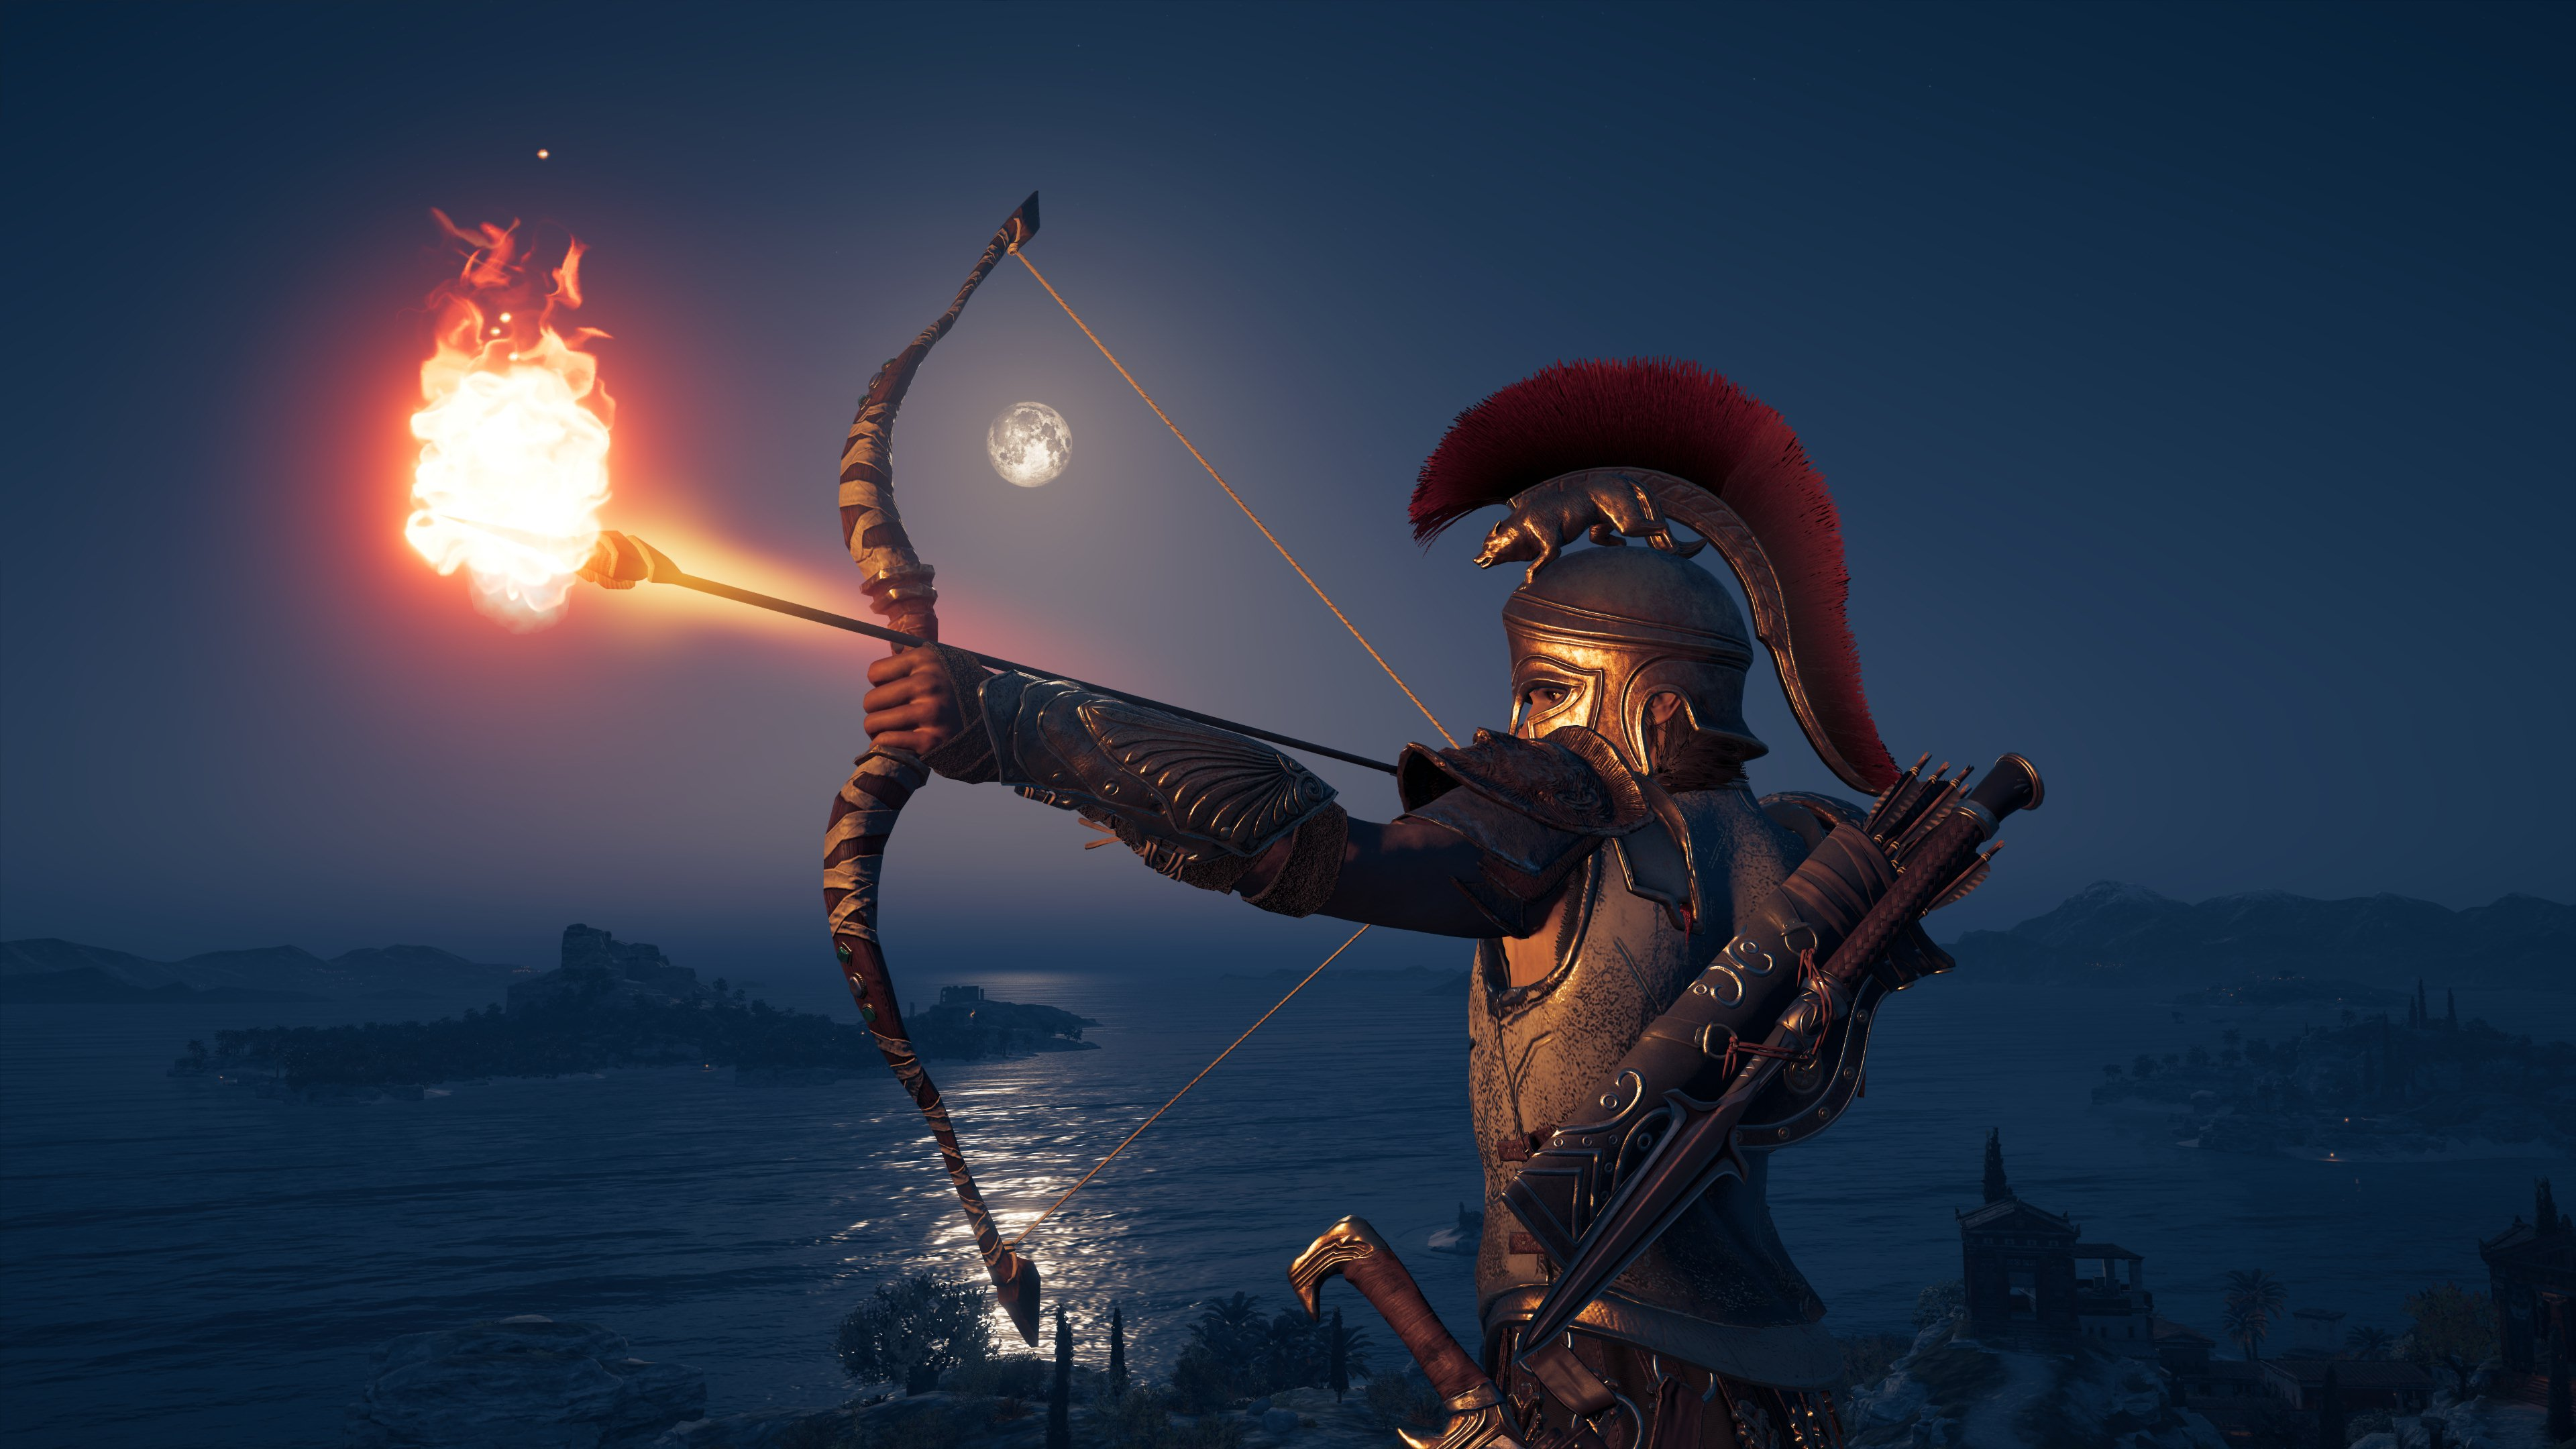 Wallpaper 4k 4k Assassins Creed Odyssey Bow And Arrow 2018 Games